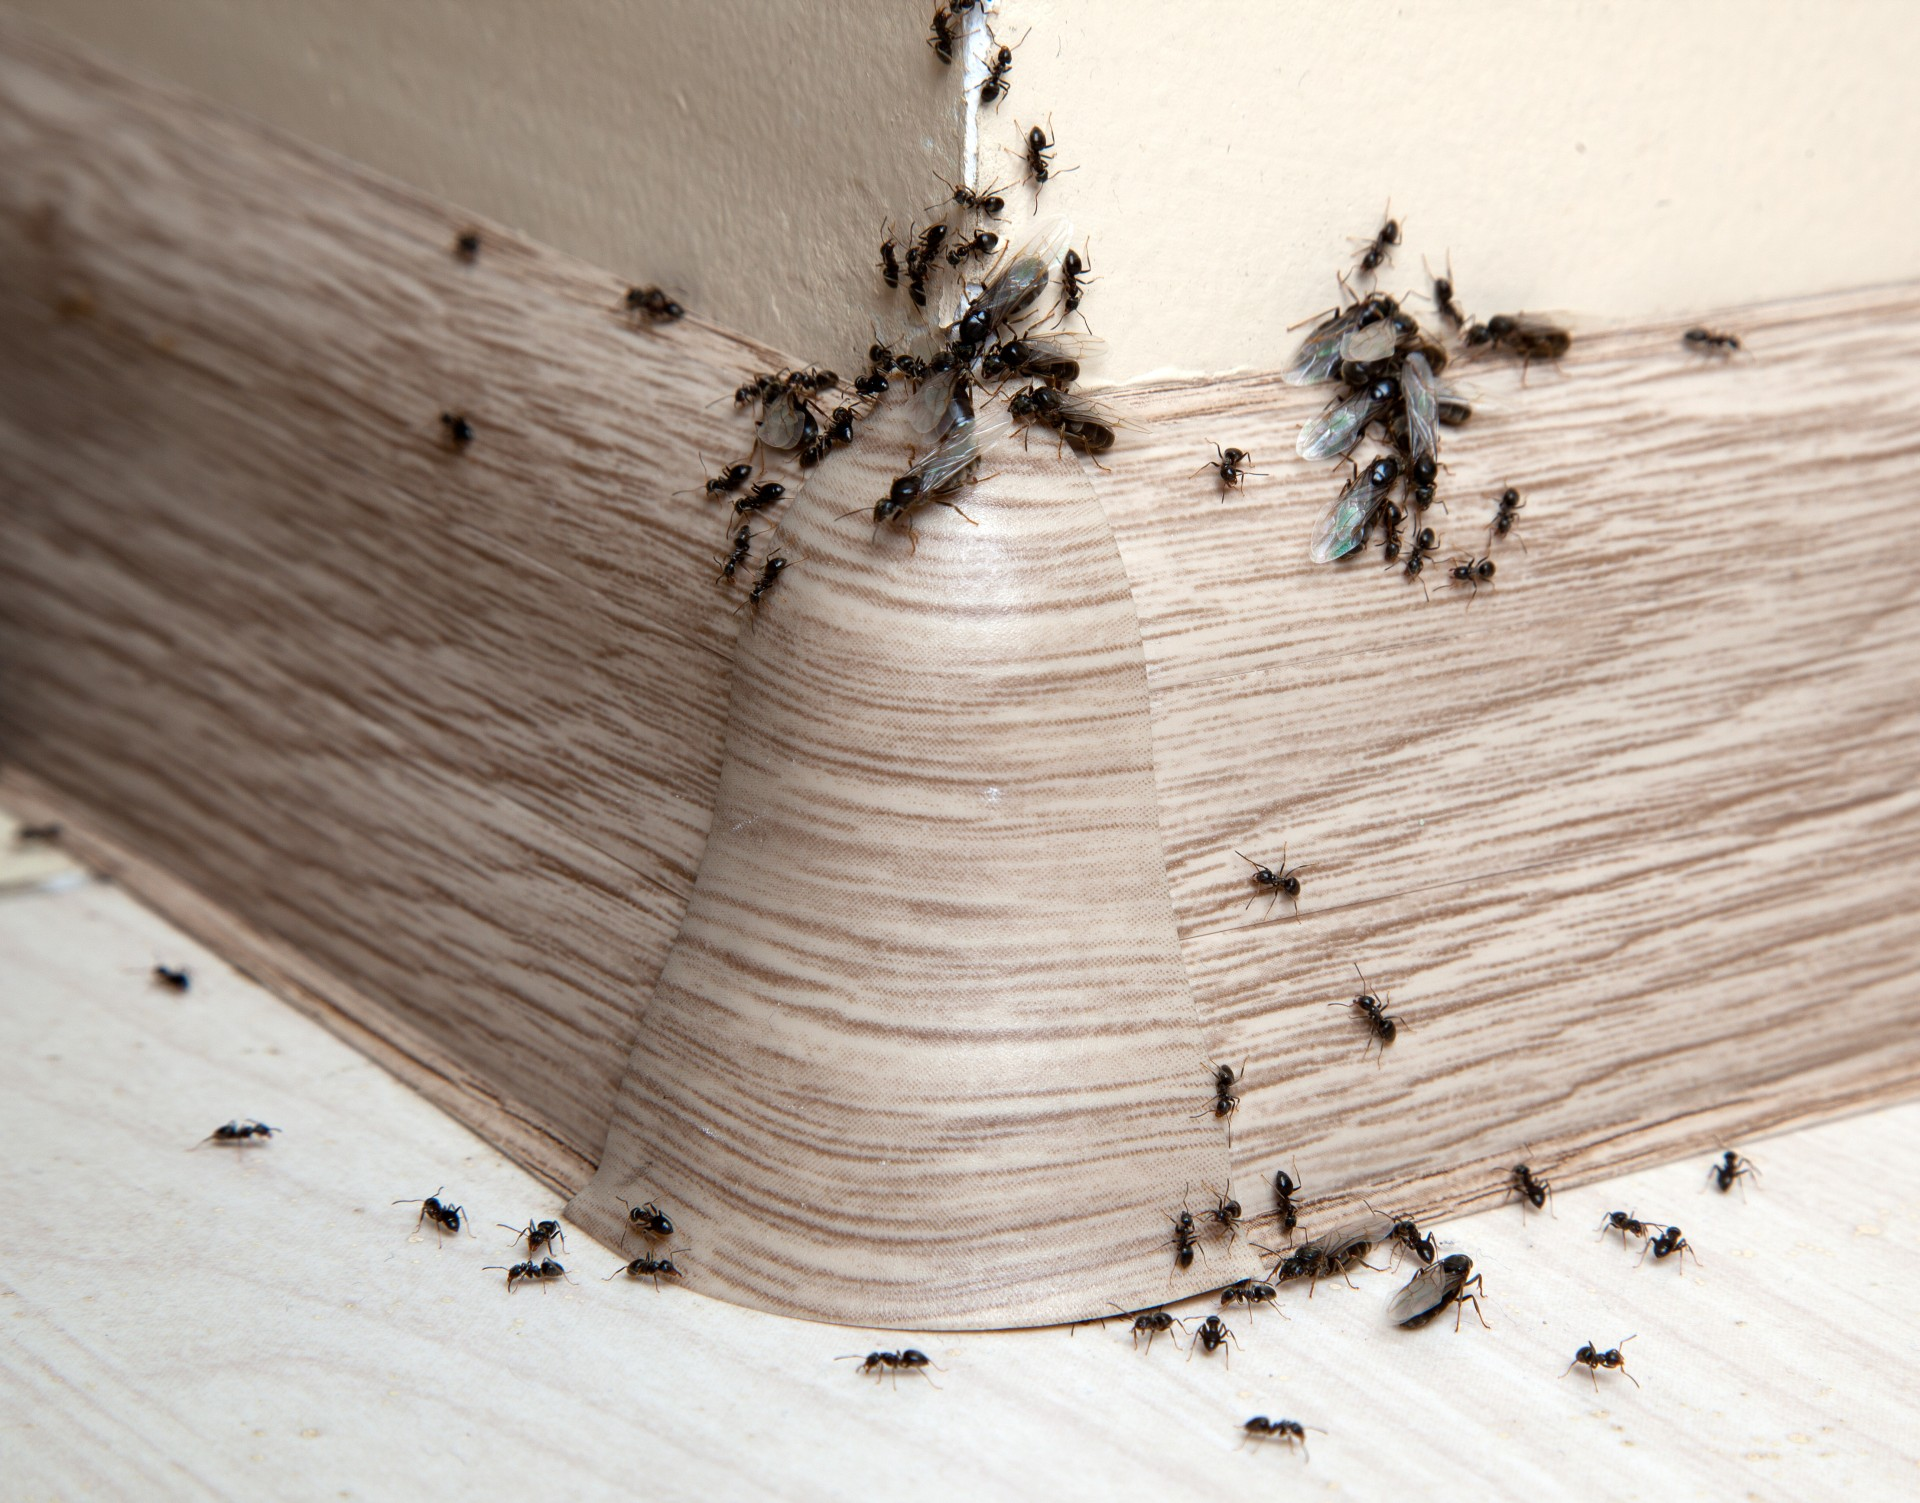 Ant Infestation, Pest Control in Swanley, Hextable, Crockenhill, BR8. Call Now 020 8166 9746